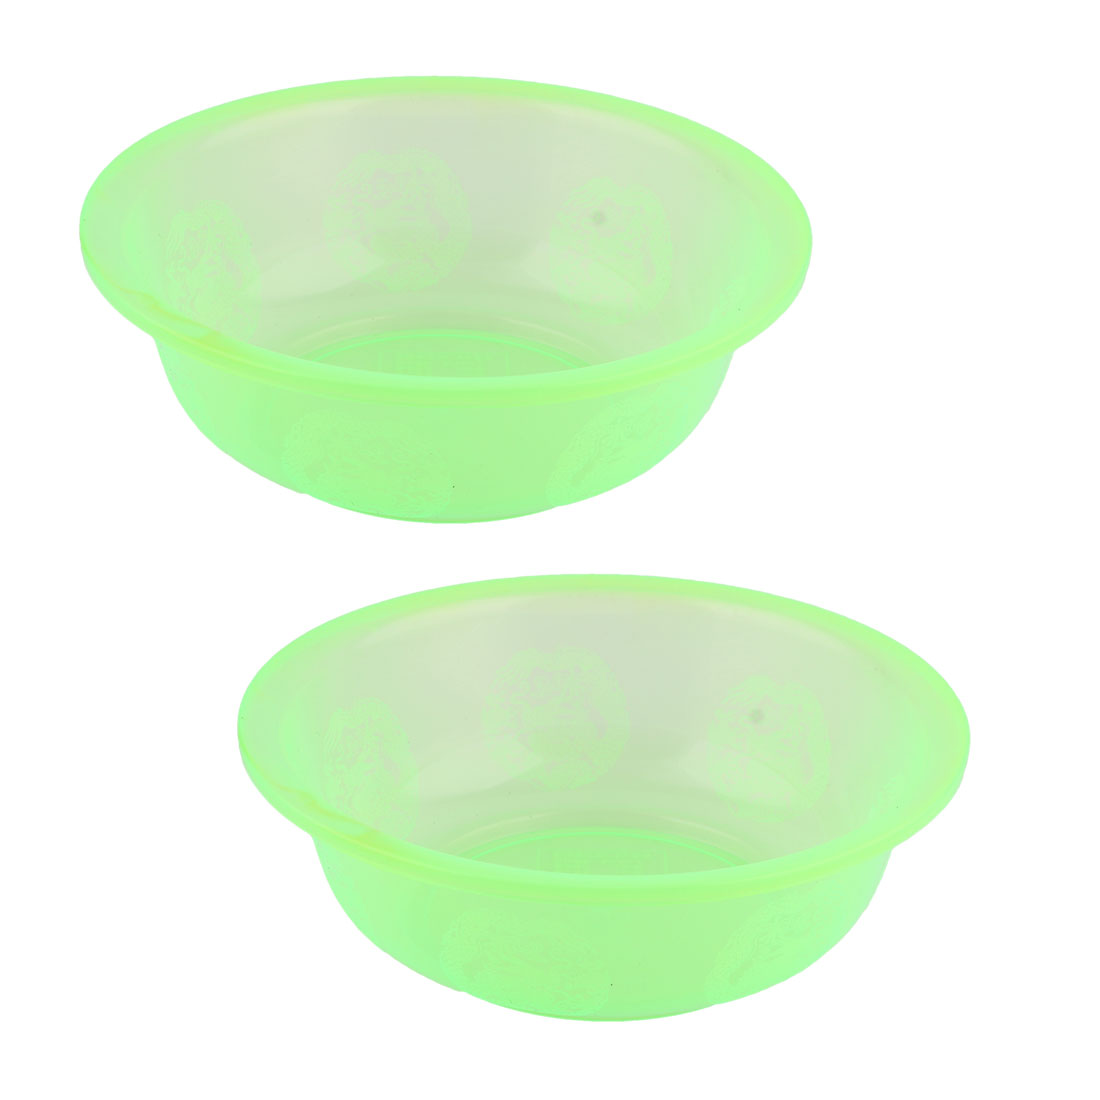 Household Kitchenware Plastic Round Food Fruit Salad Wash Basin Light Green 2 Pcs